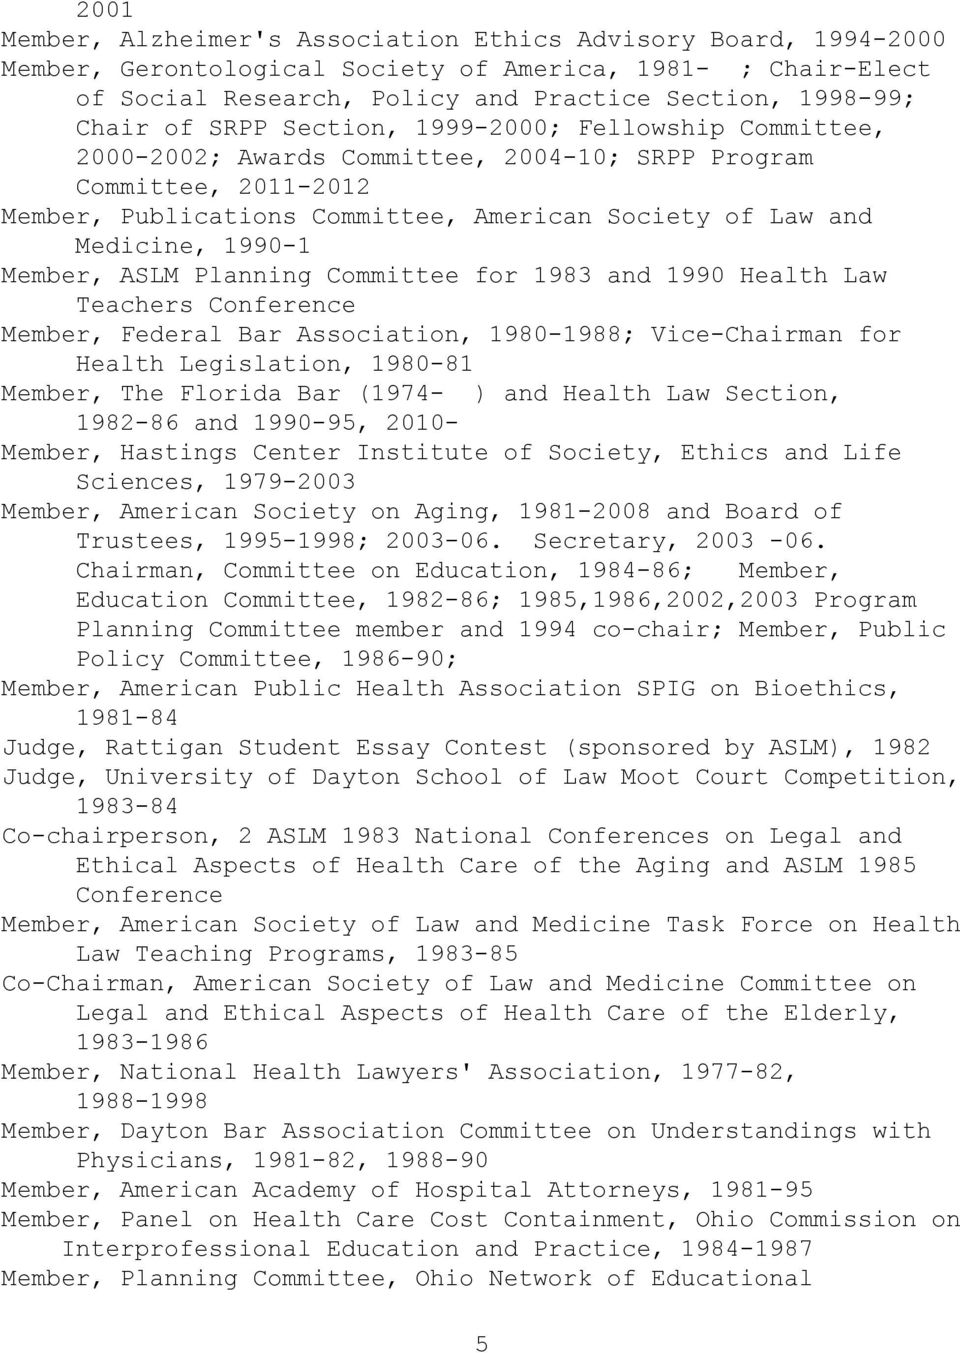 Member, ASLM Planning Committee for 1983 and 1990 Health Law Teachers Conference Member, Federal Bar Association, 1980-1988; Vice-Chairman for Health Legislation, 1980-81 Member, The Florida Bar